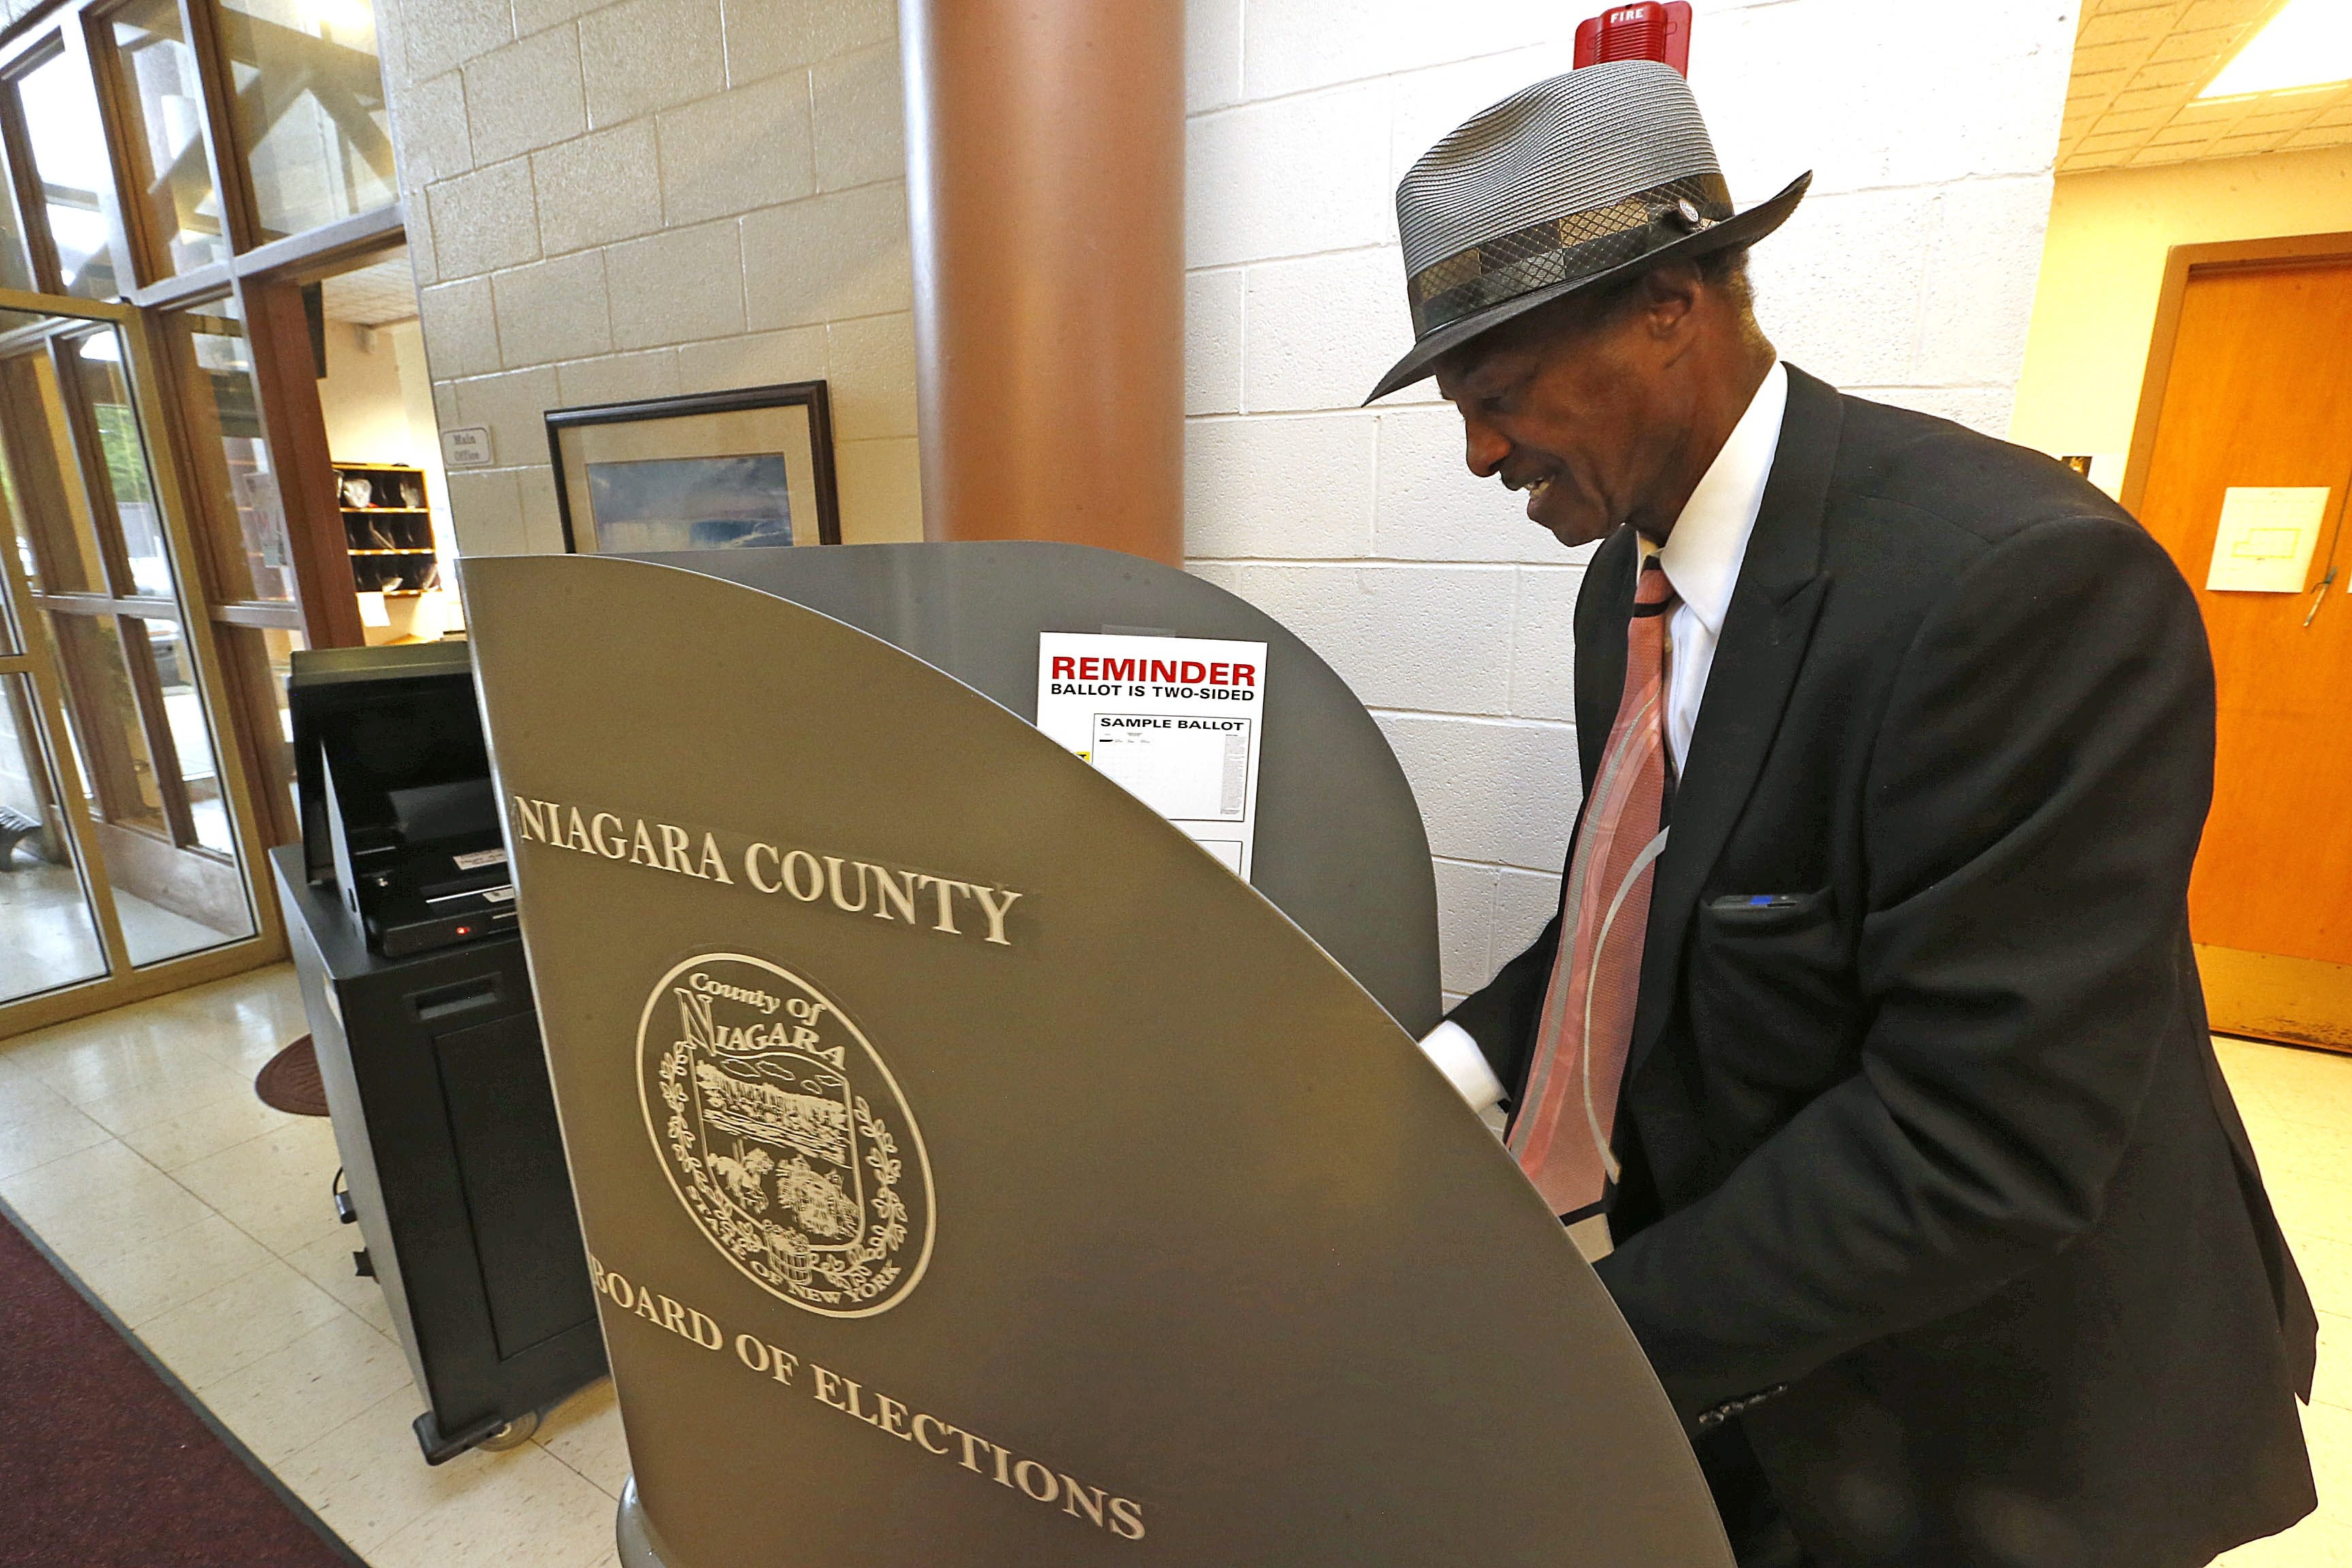 Jesse J. Scott Sr. casts his vote at Maple Avenue Elementary in the Niagara Falls school district, whose budget needed a supermajority to pass.